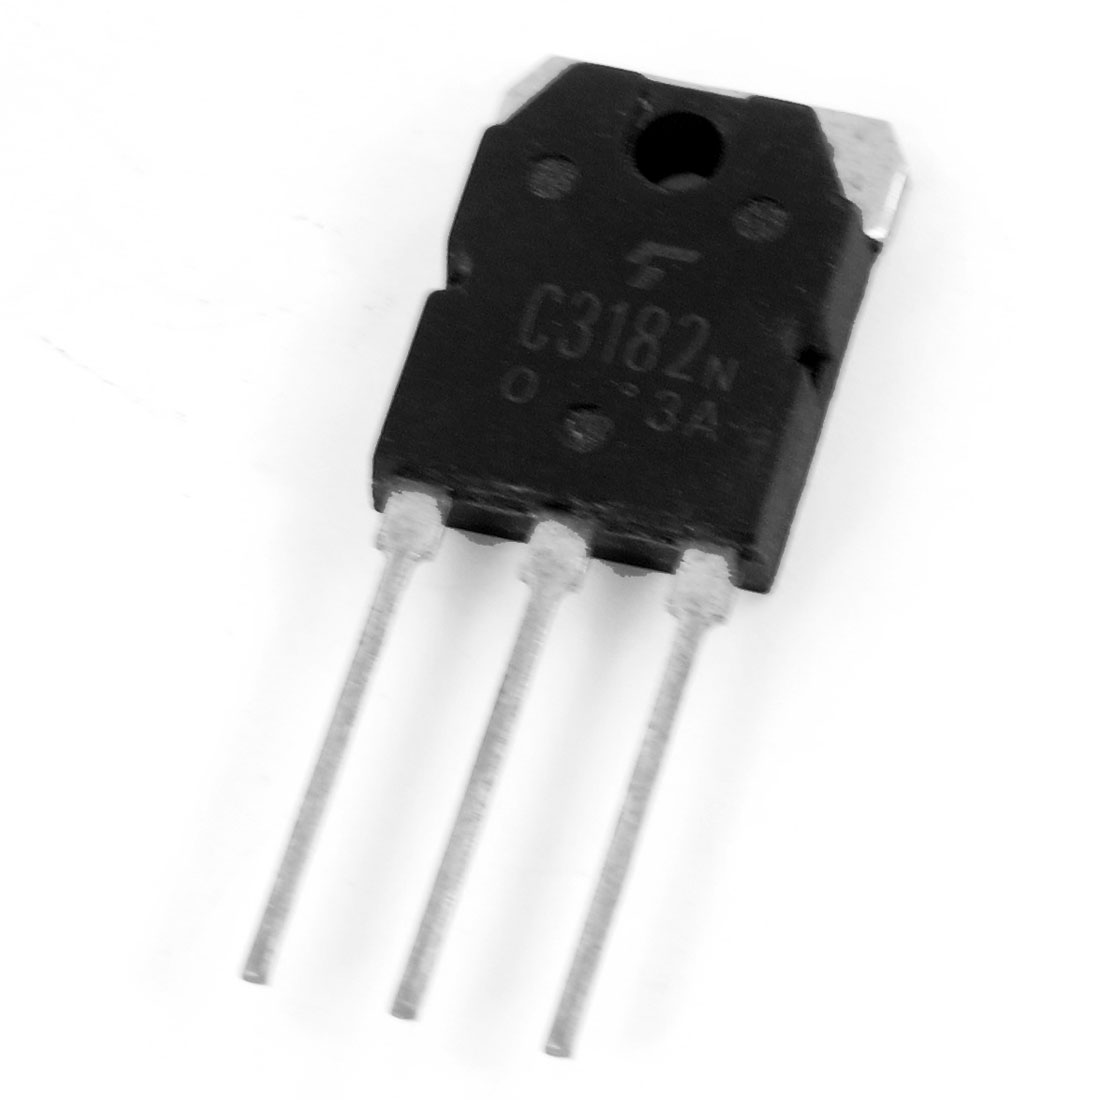 140V 10Amp High Switching Speed Silicon Transistor C3182